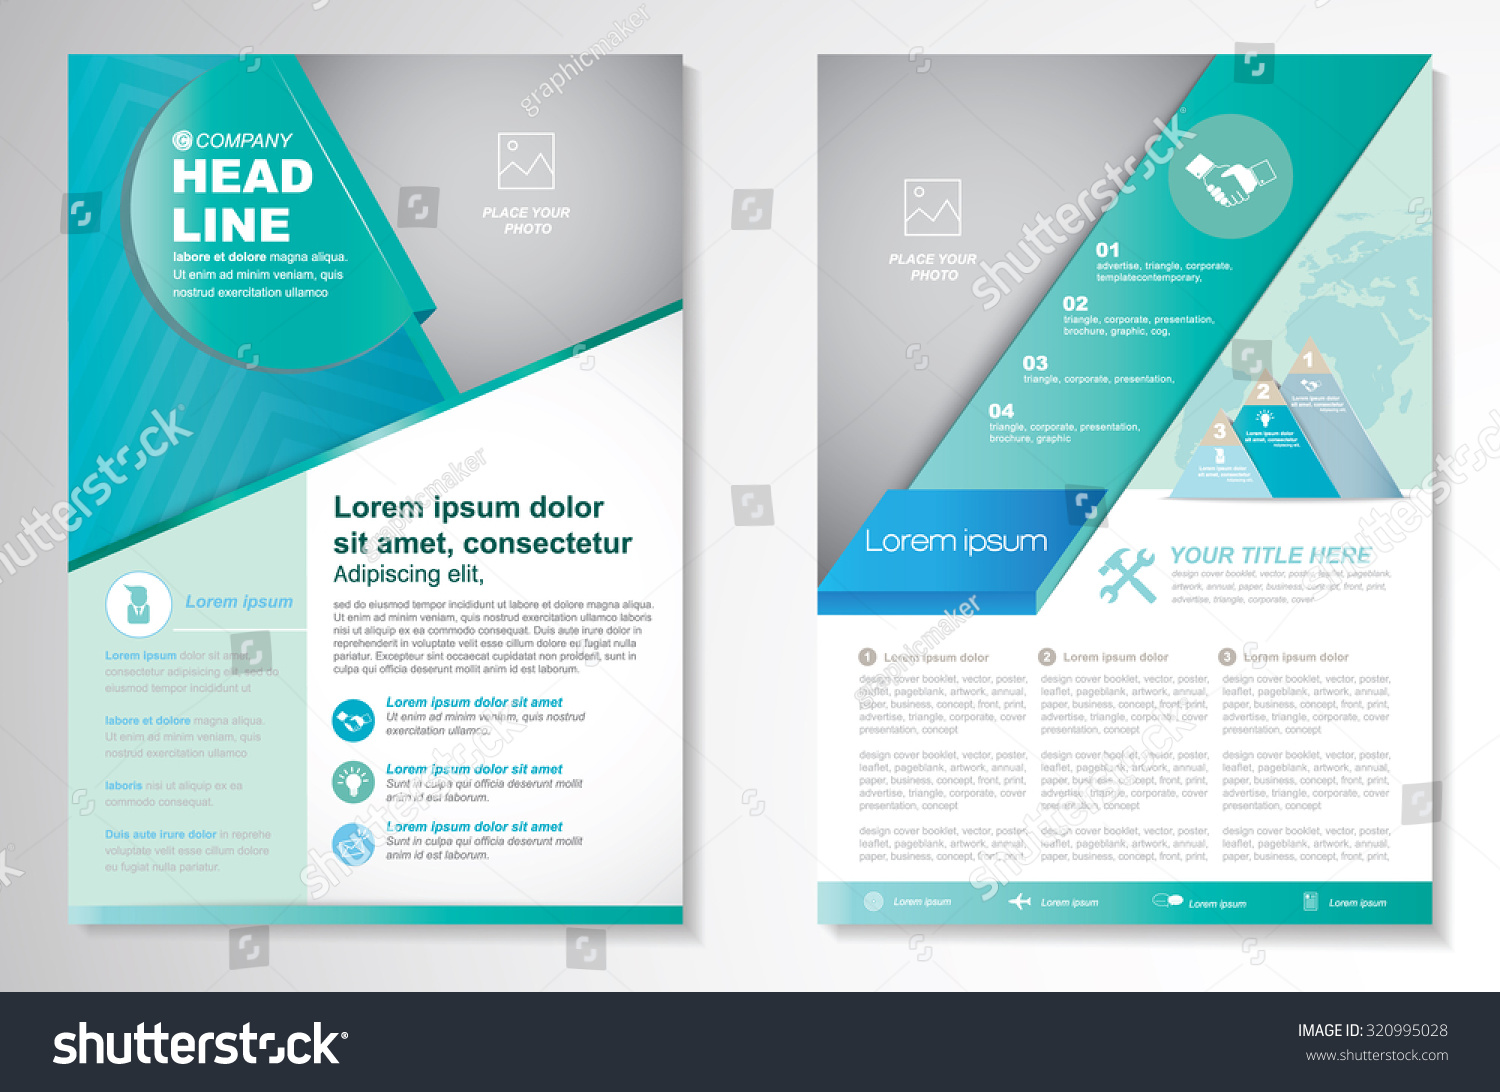 royalty vector brochure flyer design layout 320995028 stock vector brochure flyer design layout template size a4 front page and back page